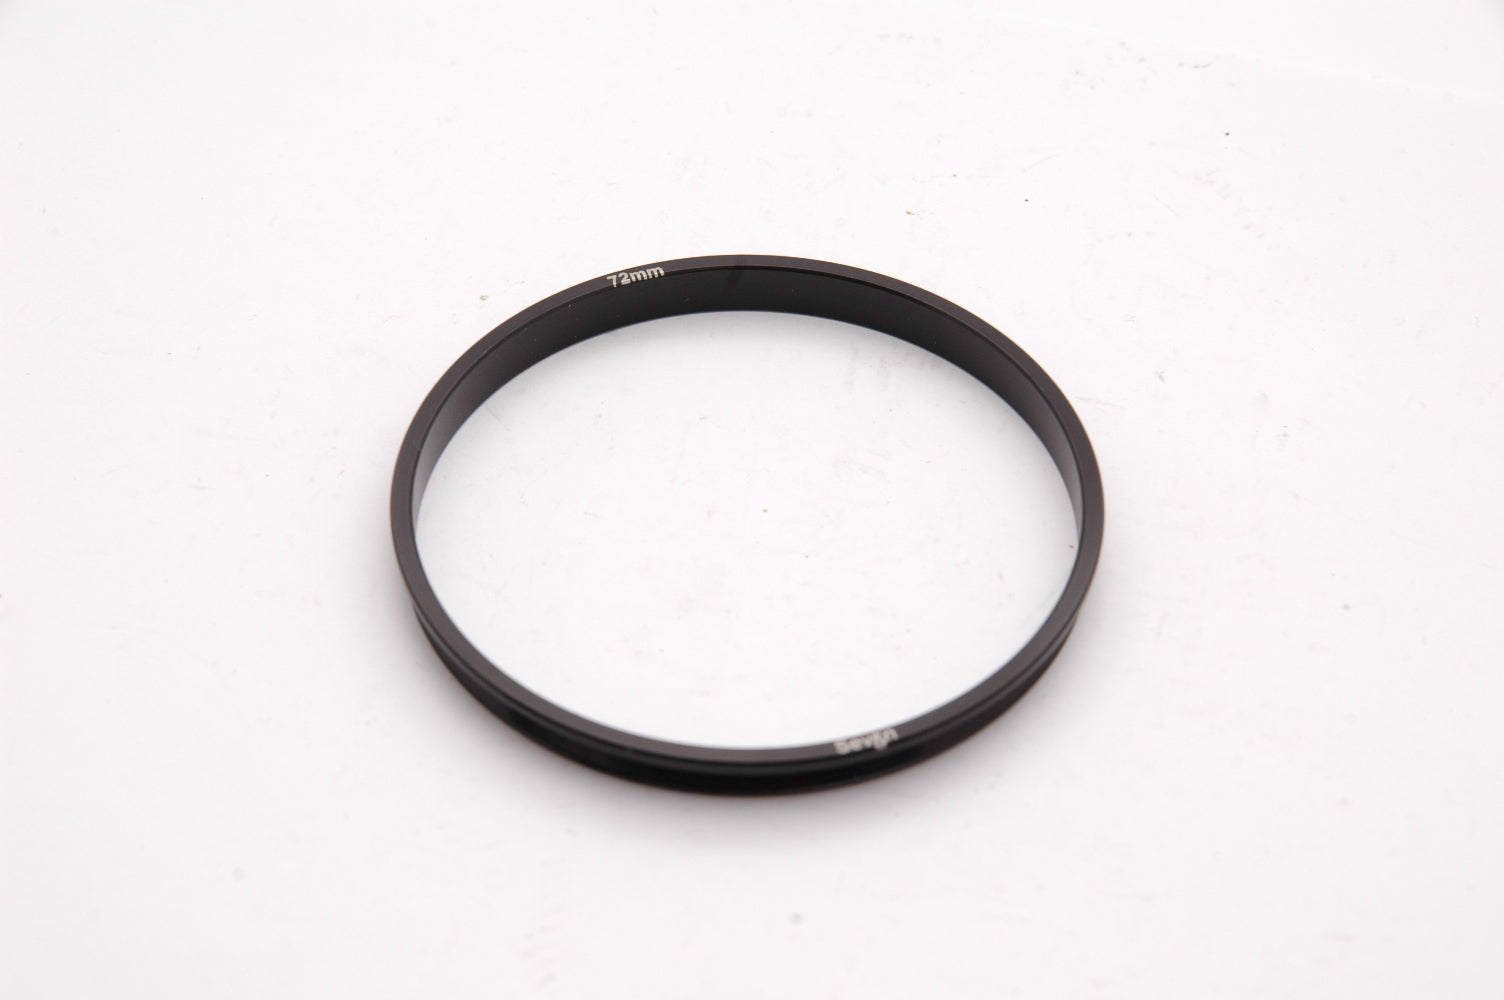 Used Lee Filters Seven5 Adaptor Ring 72mm